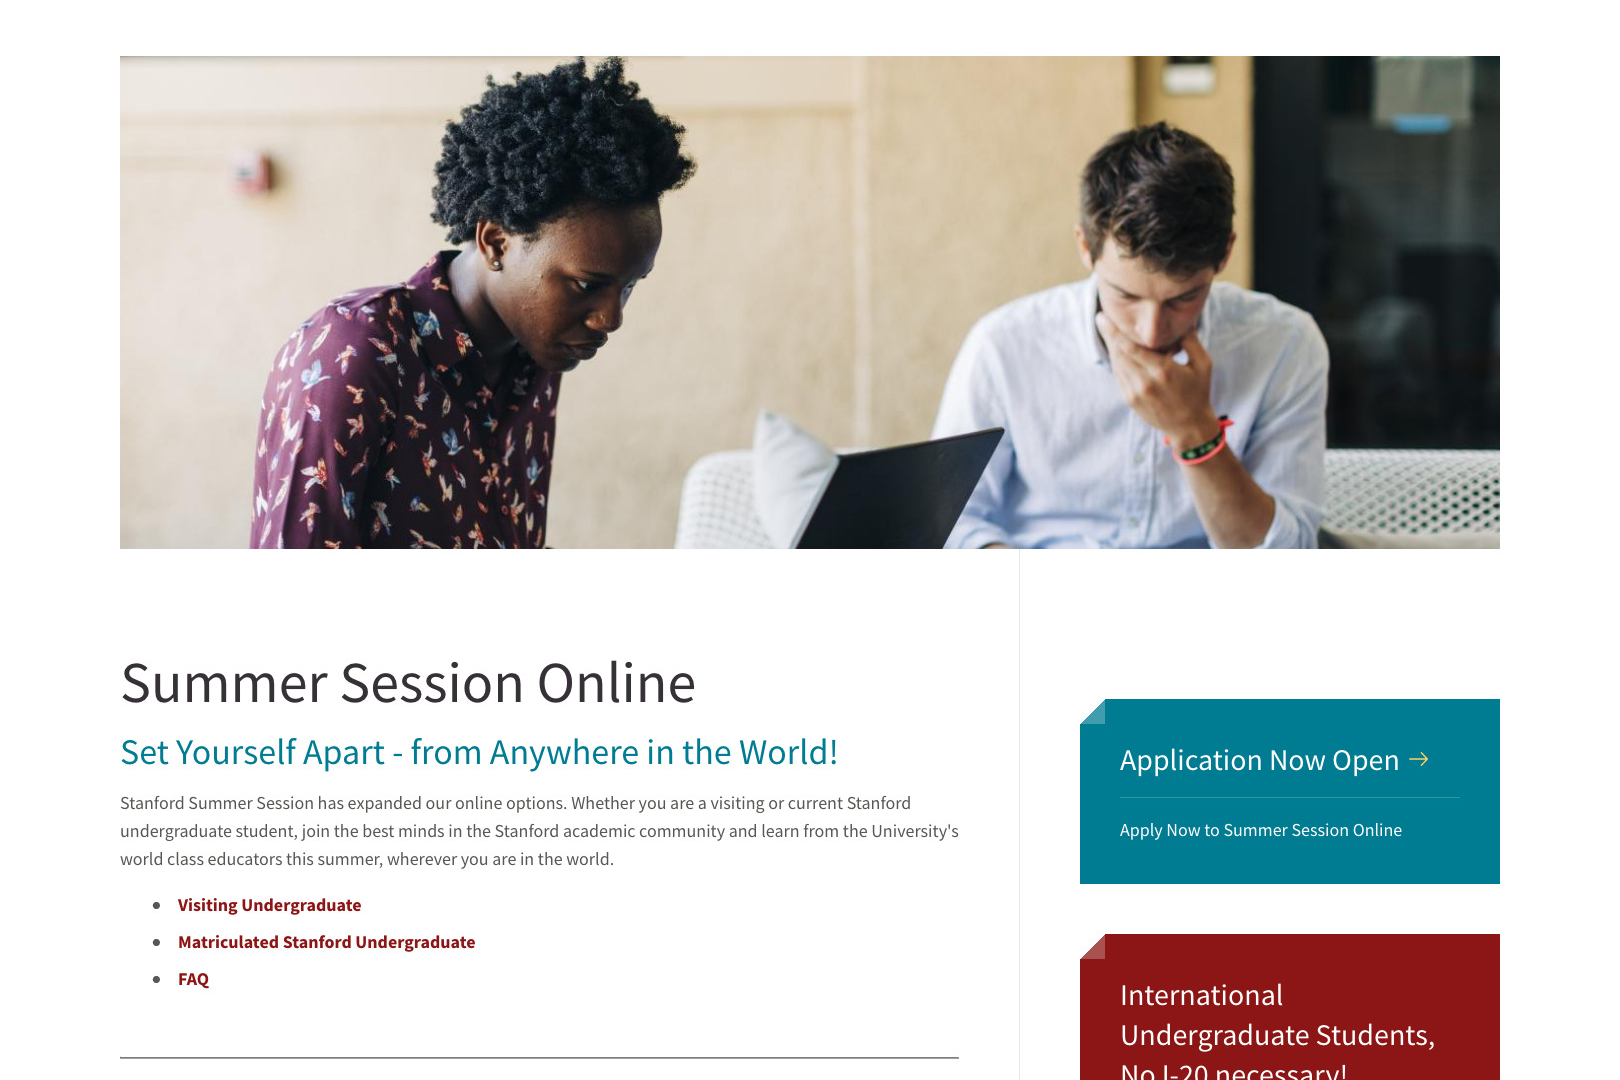 A screenshot of the Stanford Summer Session Online Programs page